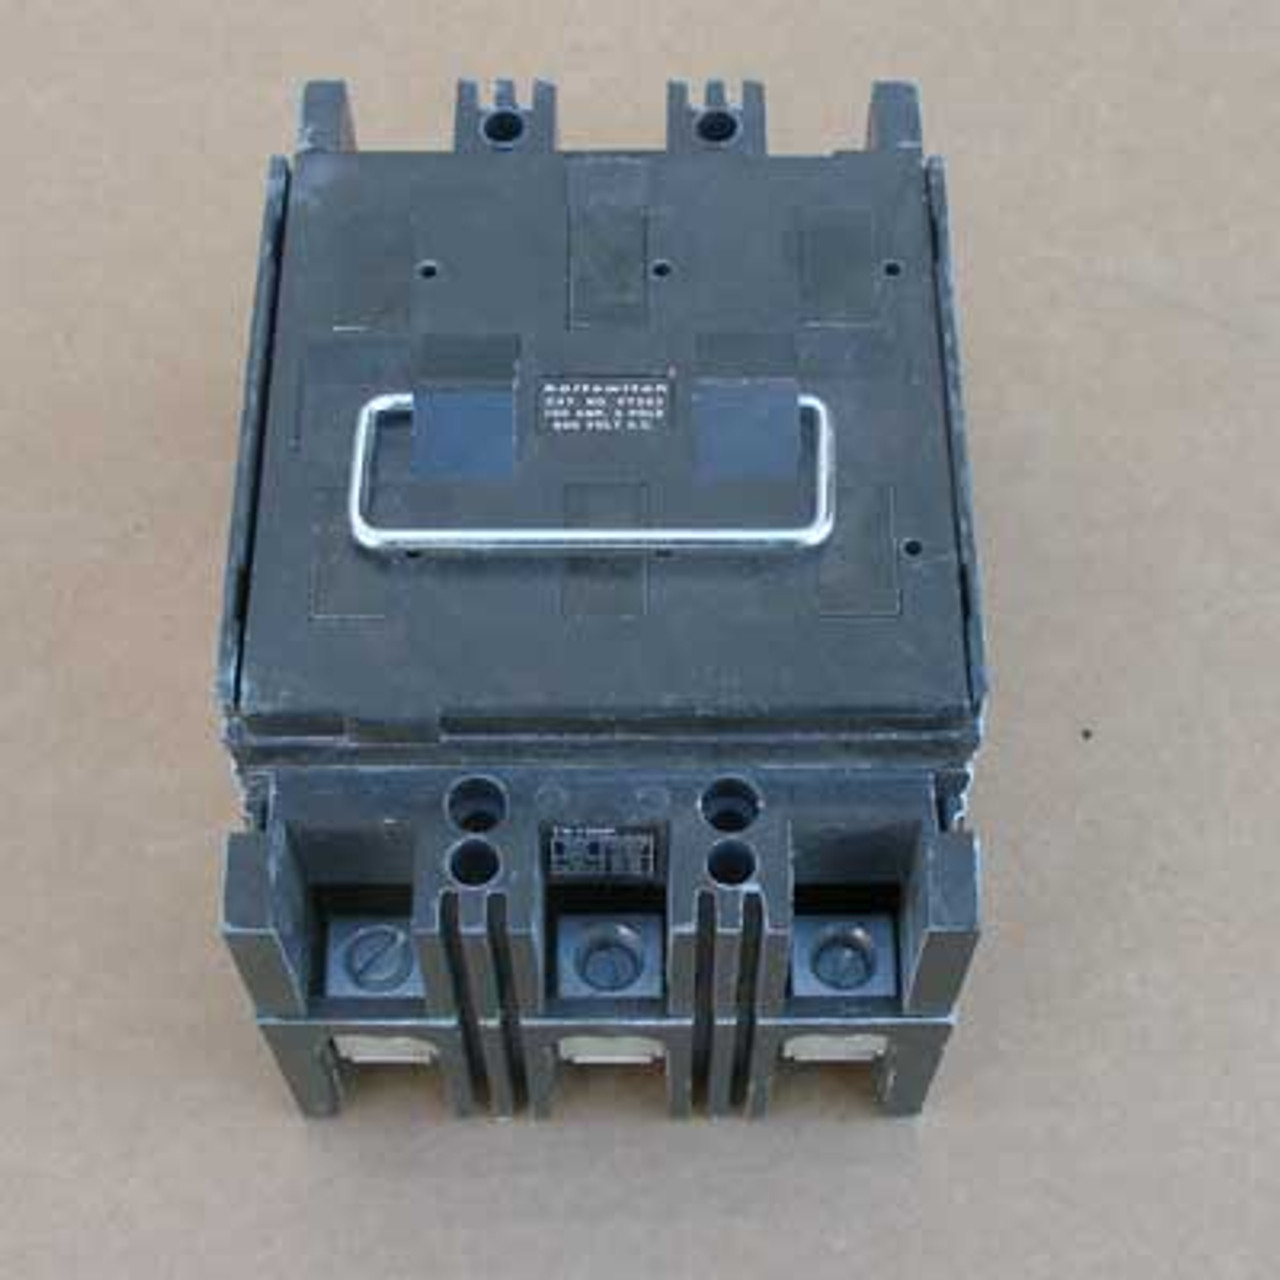 Boltswitch PT363 3 Pole 100 Amp 600V Pullout Switch - Used